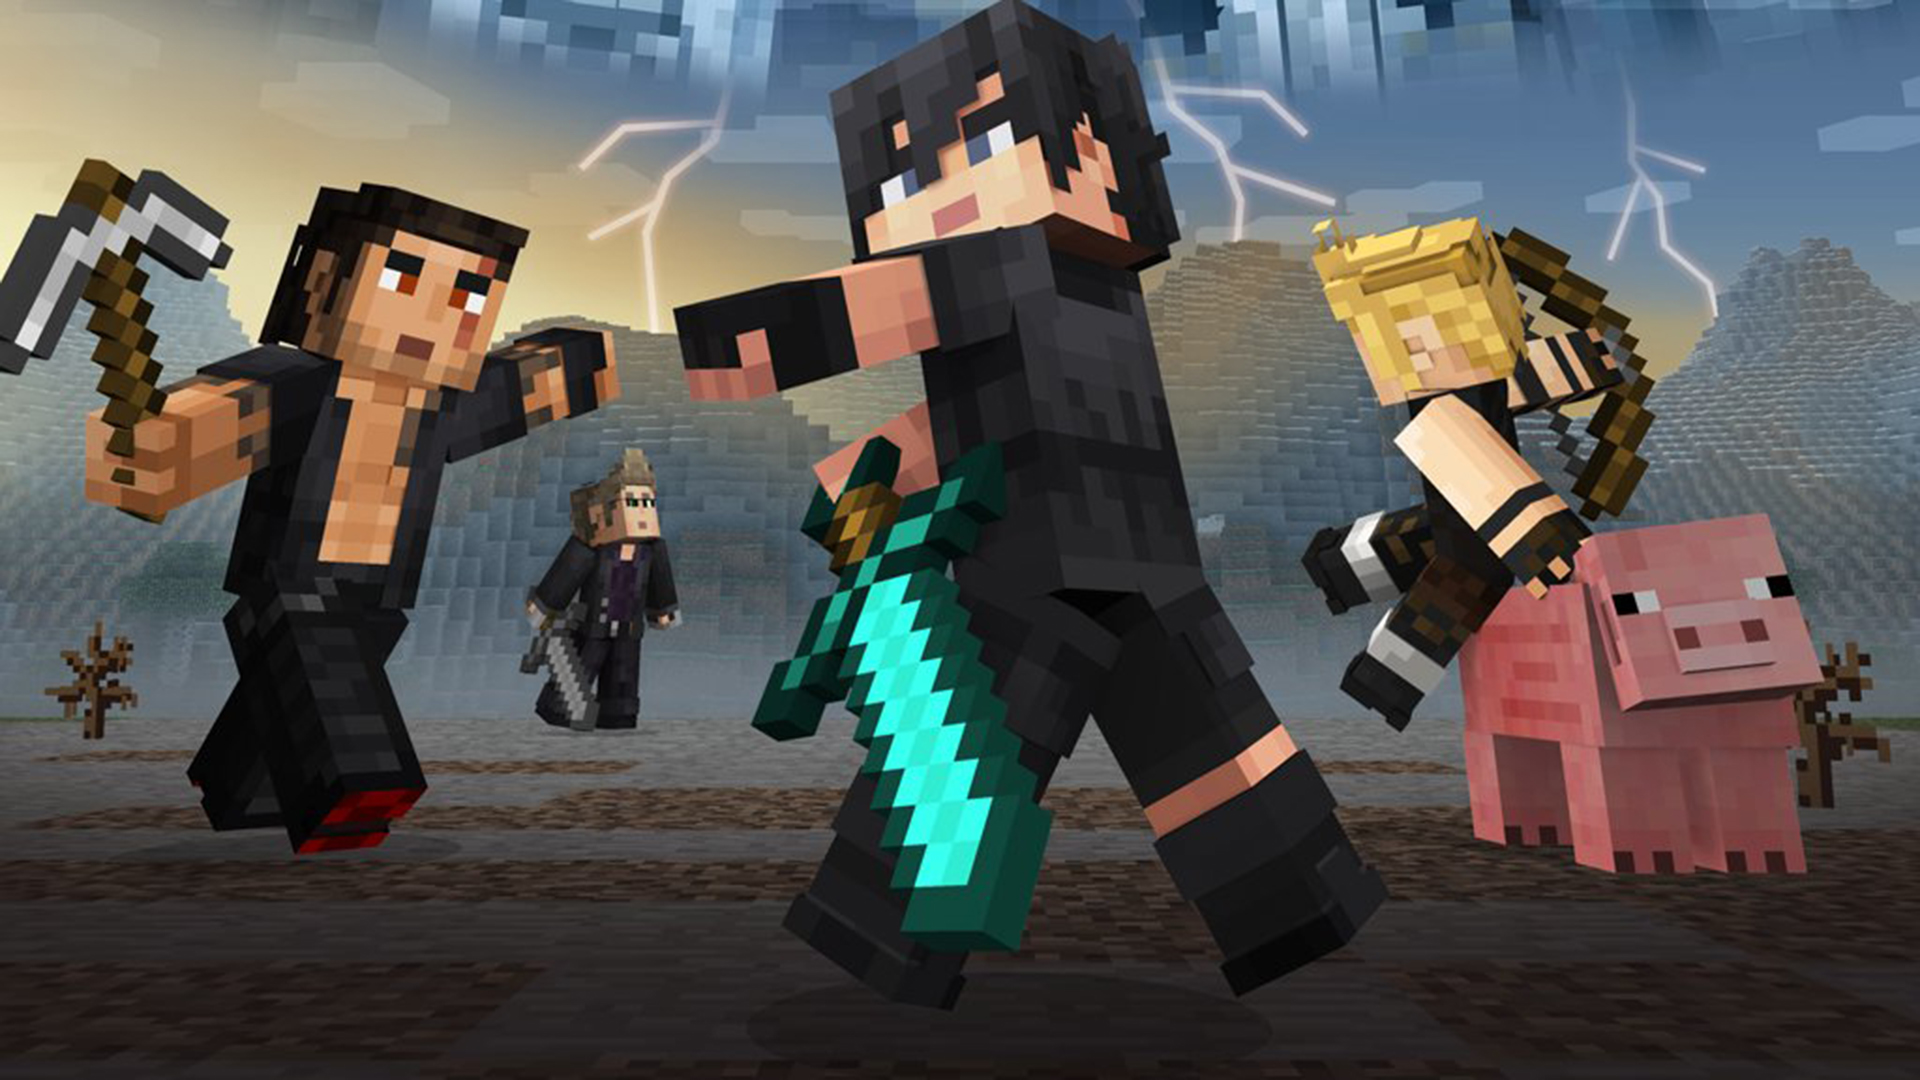 Noctis and pals are heading to Minecraft with a Final Fantasy XV skin pack screenshot